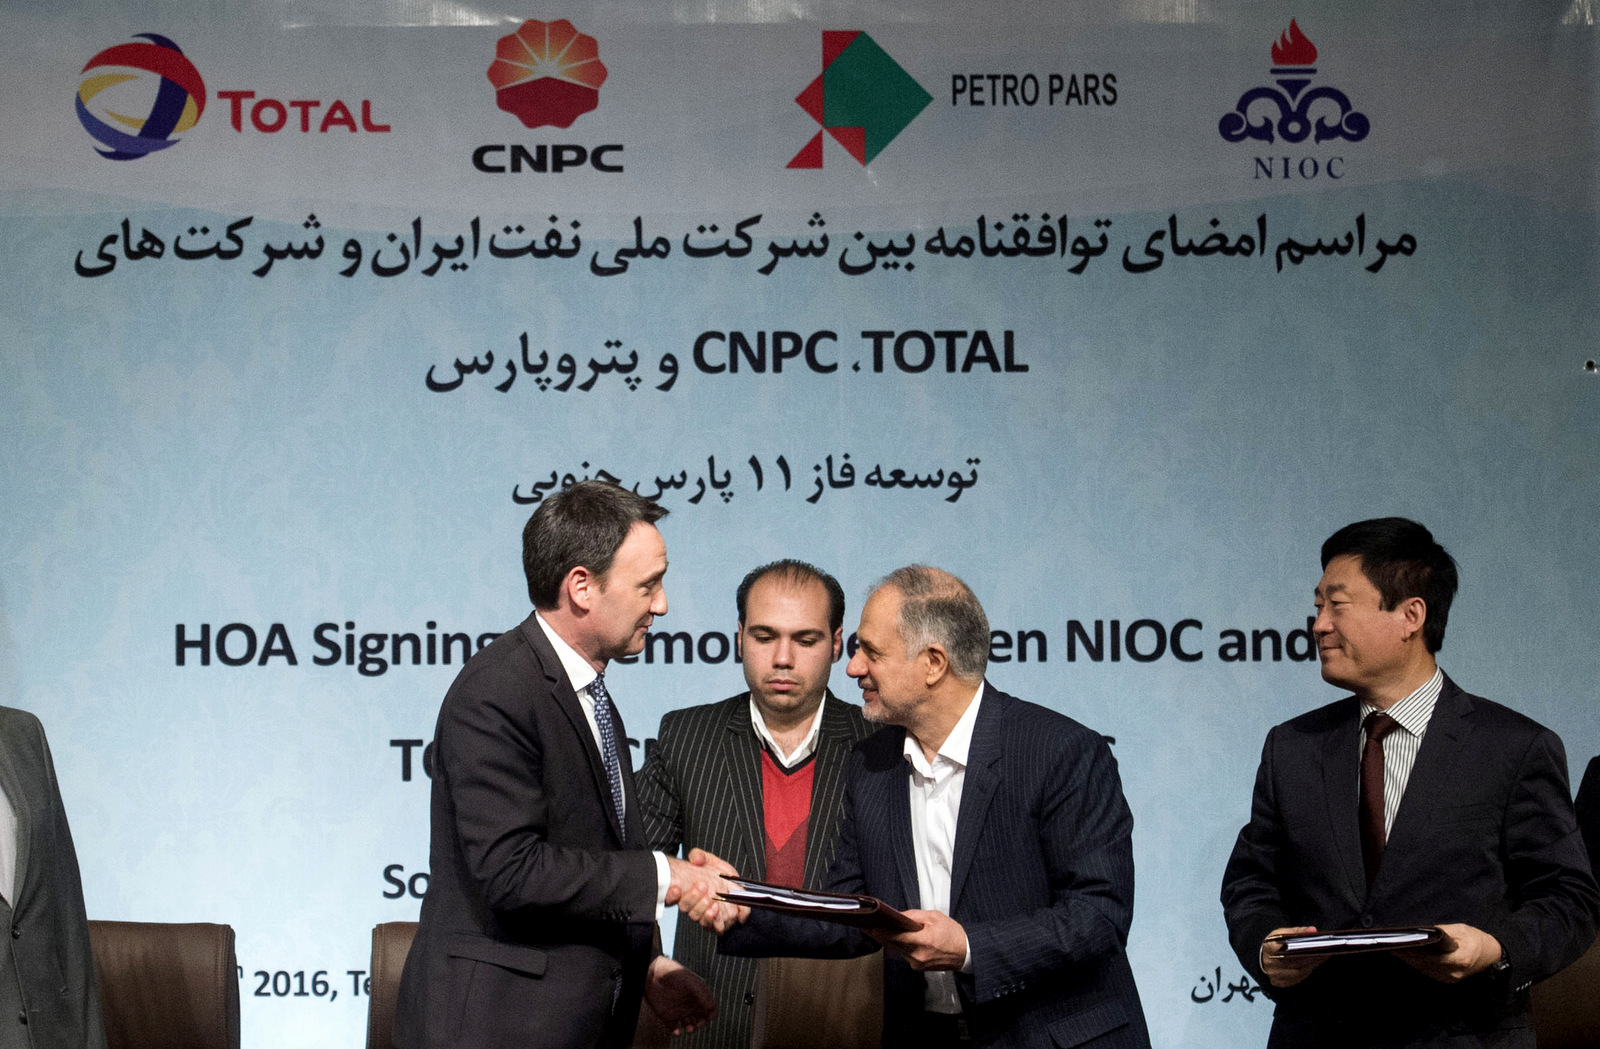 Head of the Middle East and North Africa division at Total, Stephane Michel, left, and managing director of the National Iranian Oil Company Ali Kardor, right, shake hands after signing a $4.8 billion gas agreement in Tehran, Iran, Tuesday, Nov. 8, 2016. (AP/Ebrahim Noroozi)